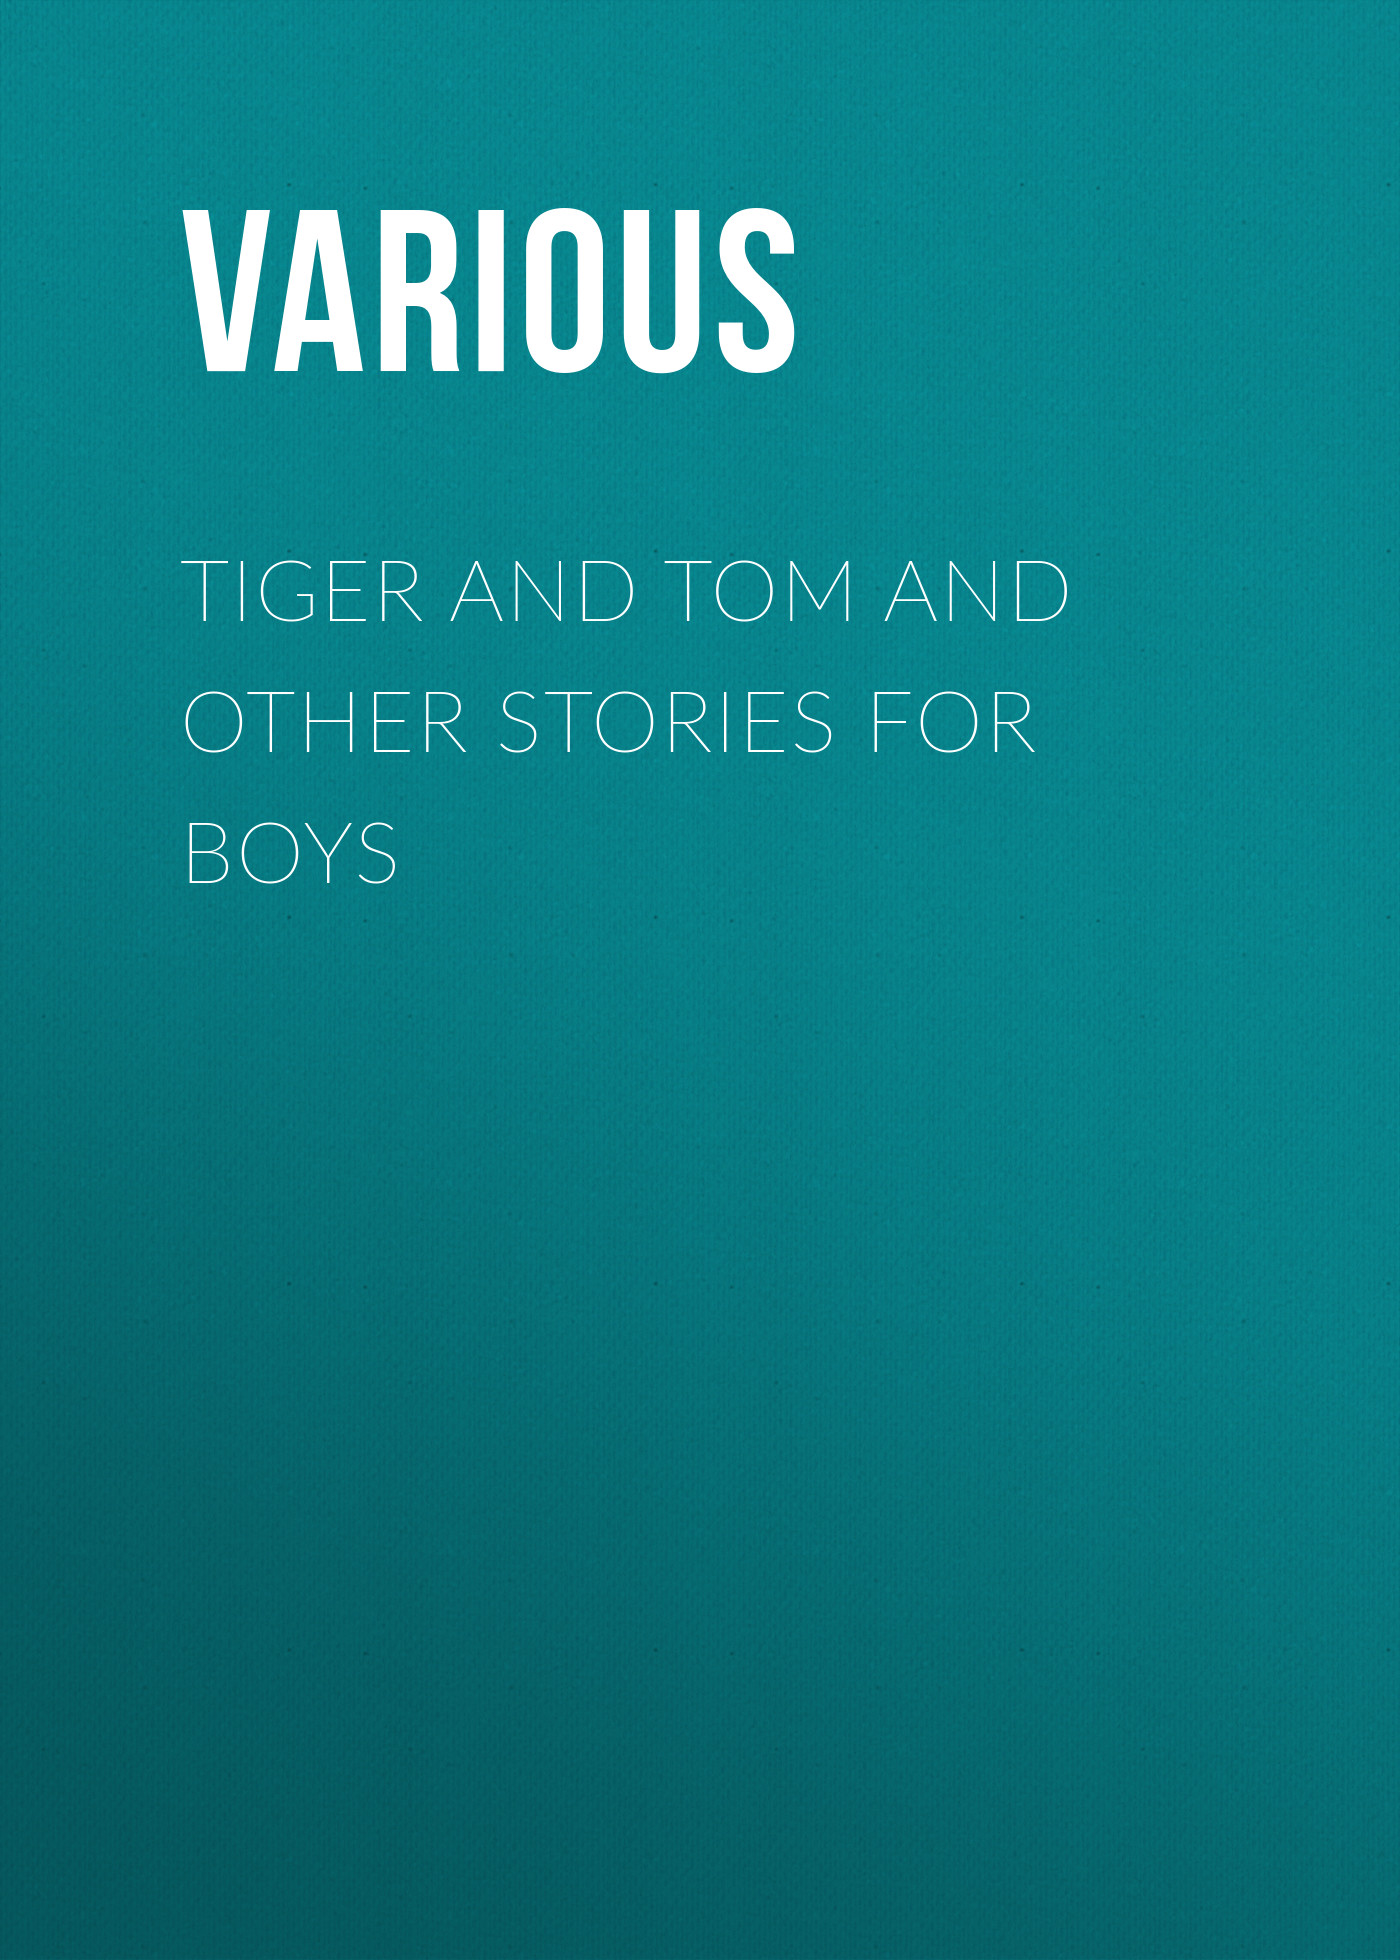 Various Tiger and Tom and Other Stories for Boys tactical foldable grip for glock and other guns